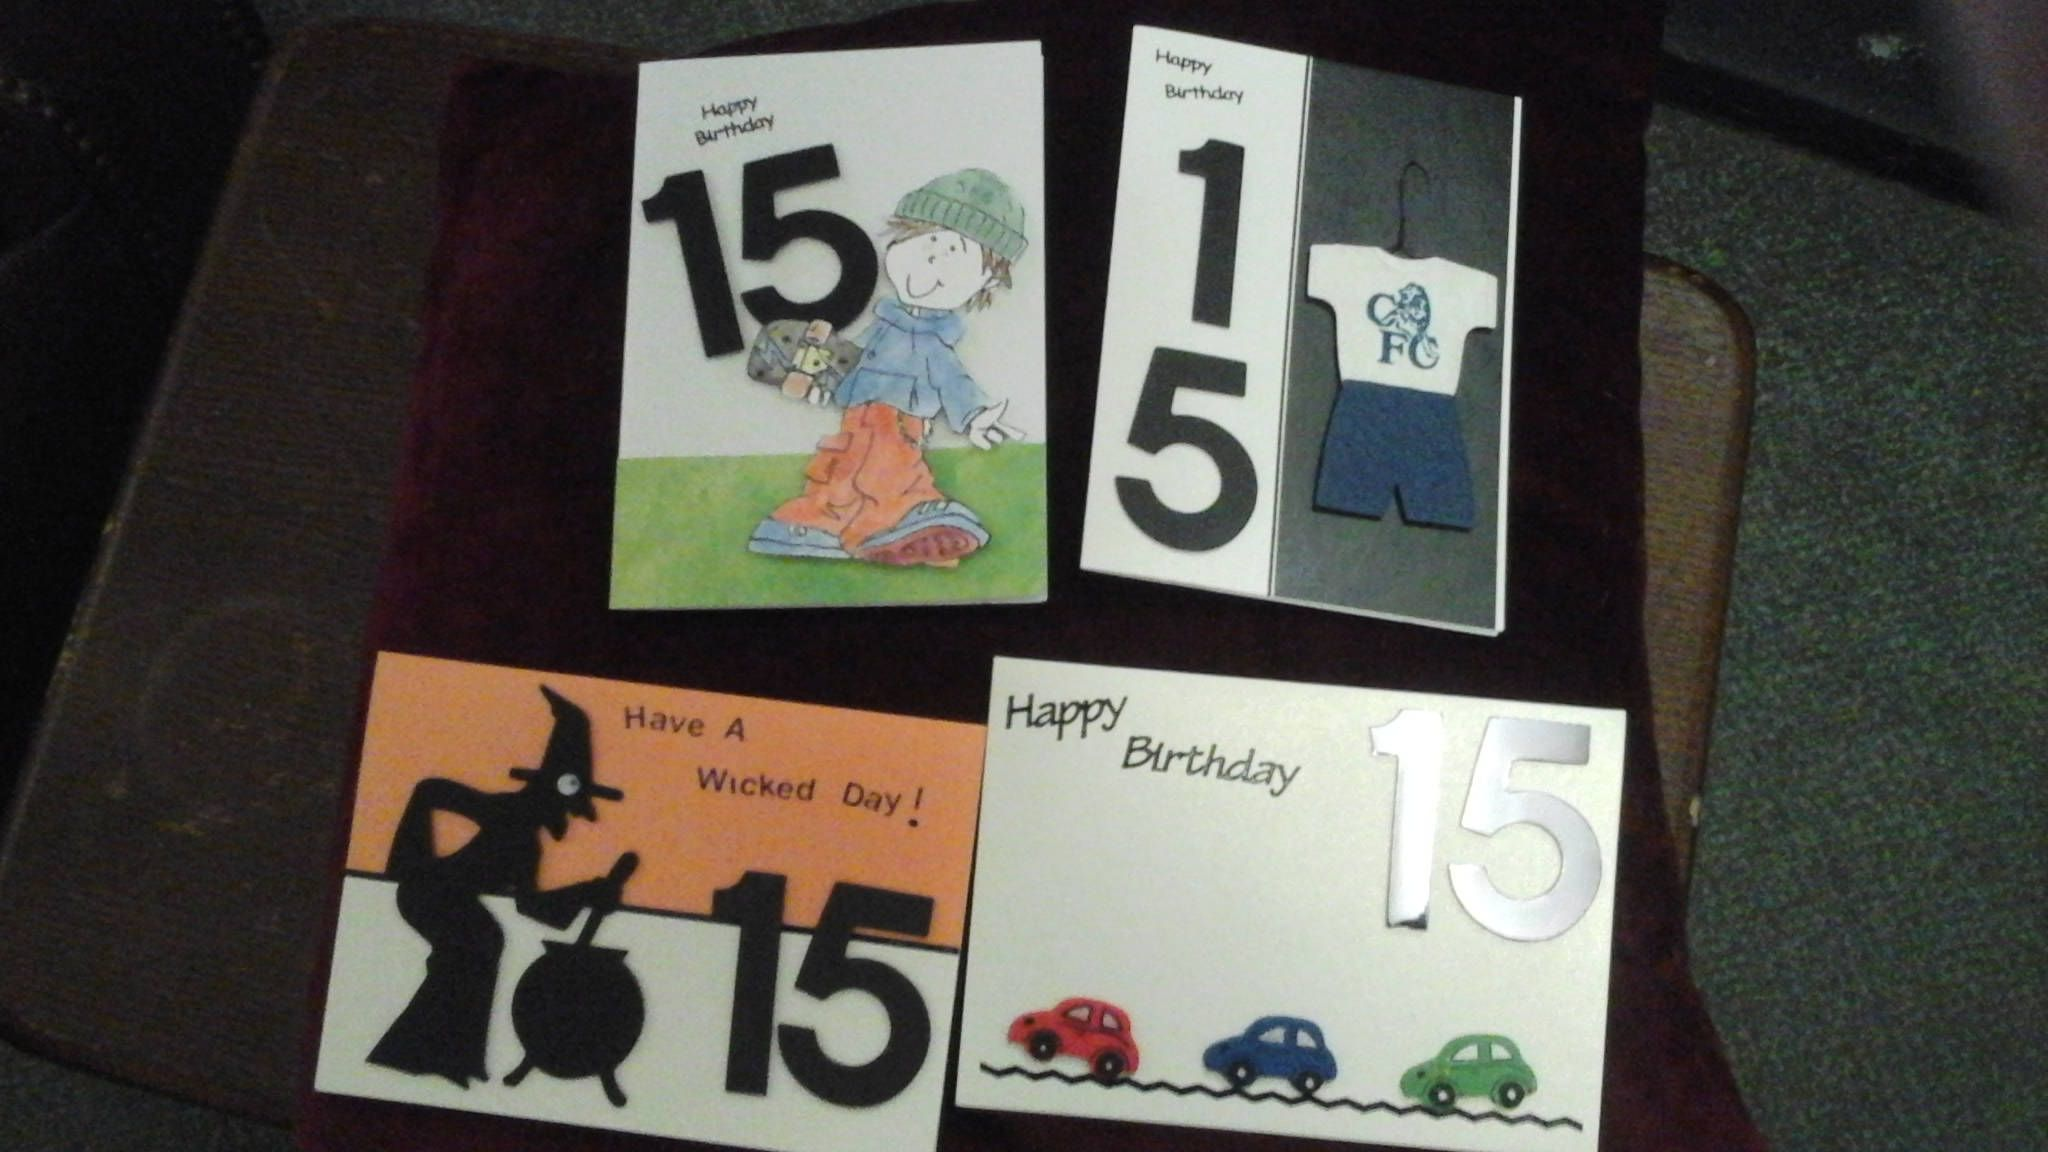 15 year old birthday cards by CrazyladysEmporium on Etsy